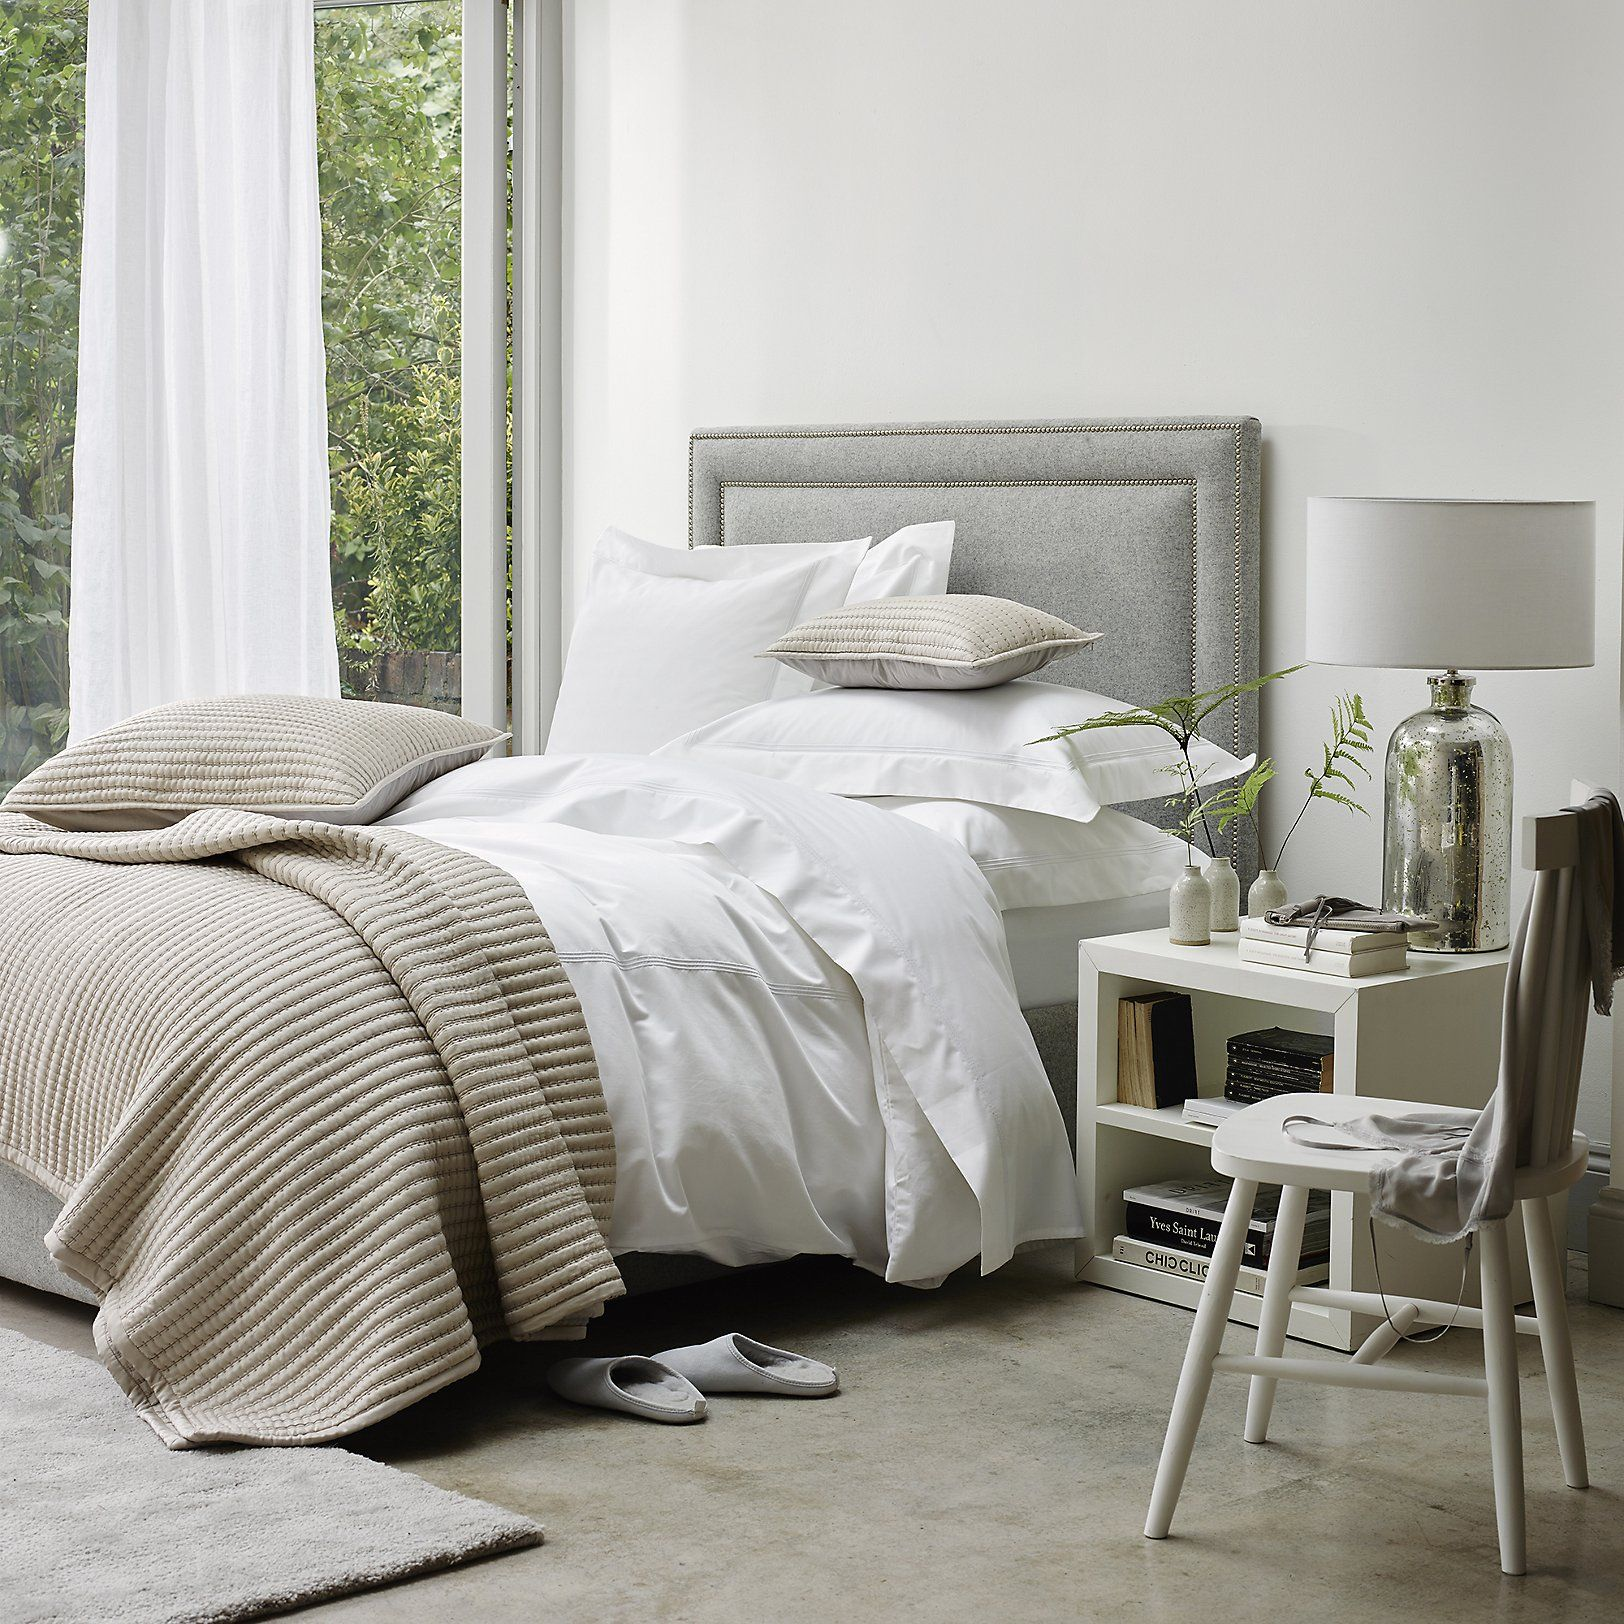 Belgravia Bed Linen Collection Collections Bedroom The White Company Us